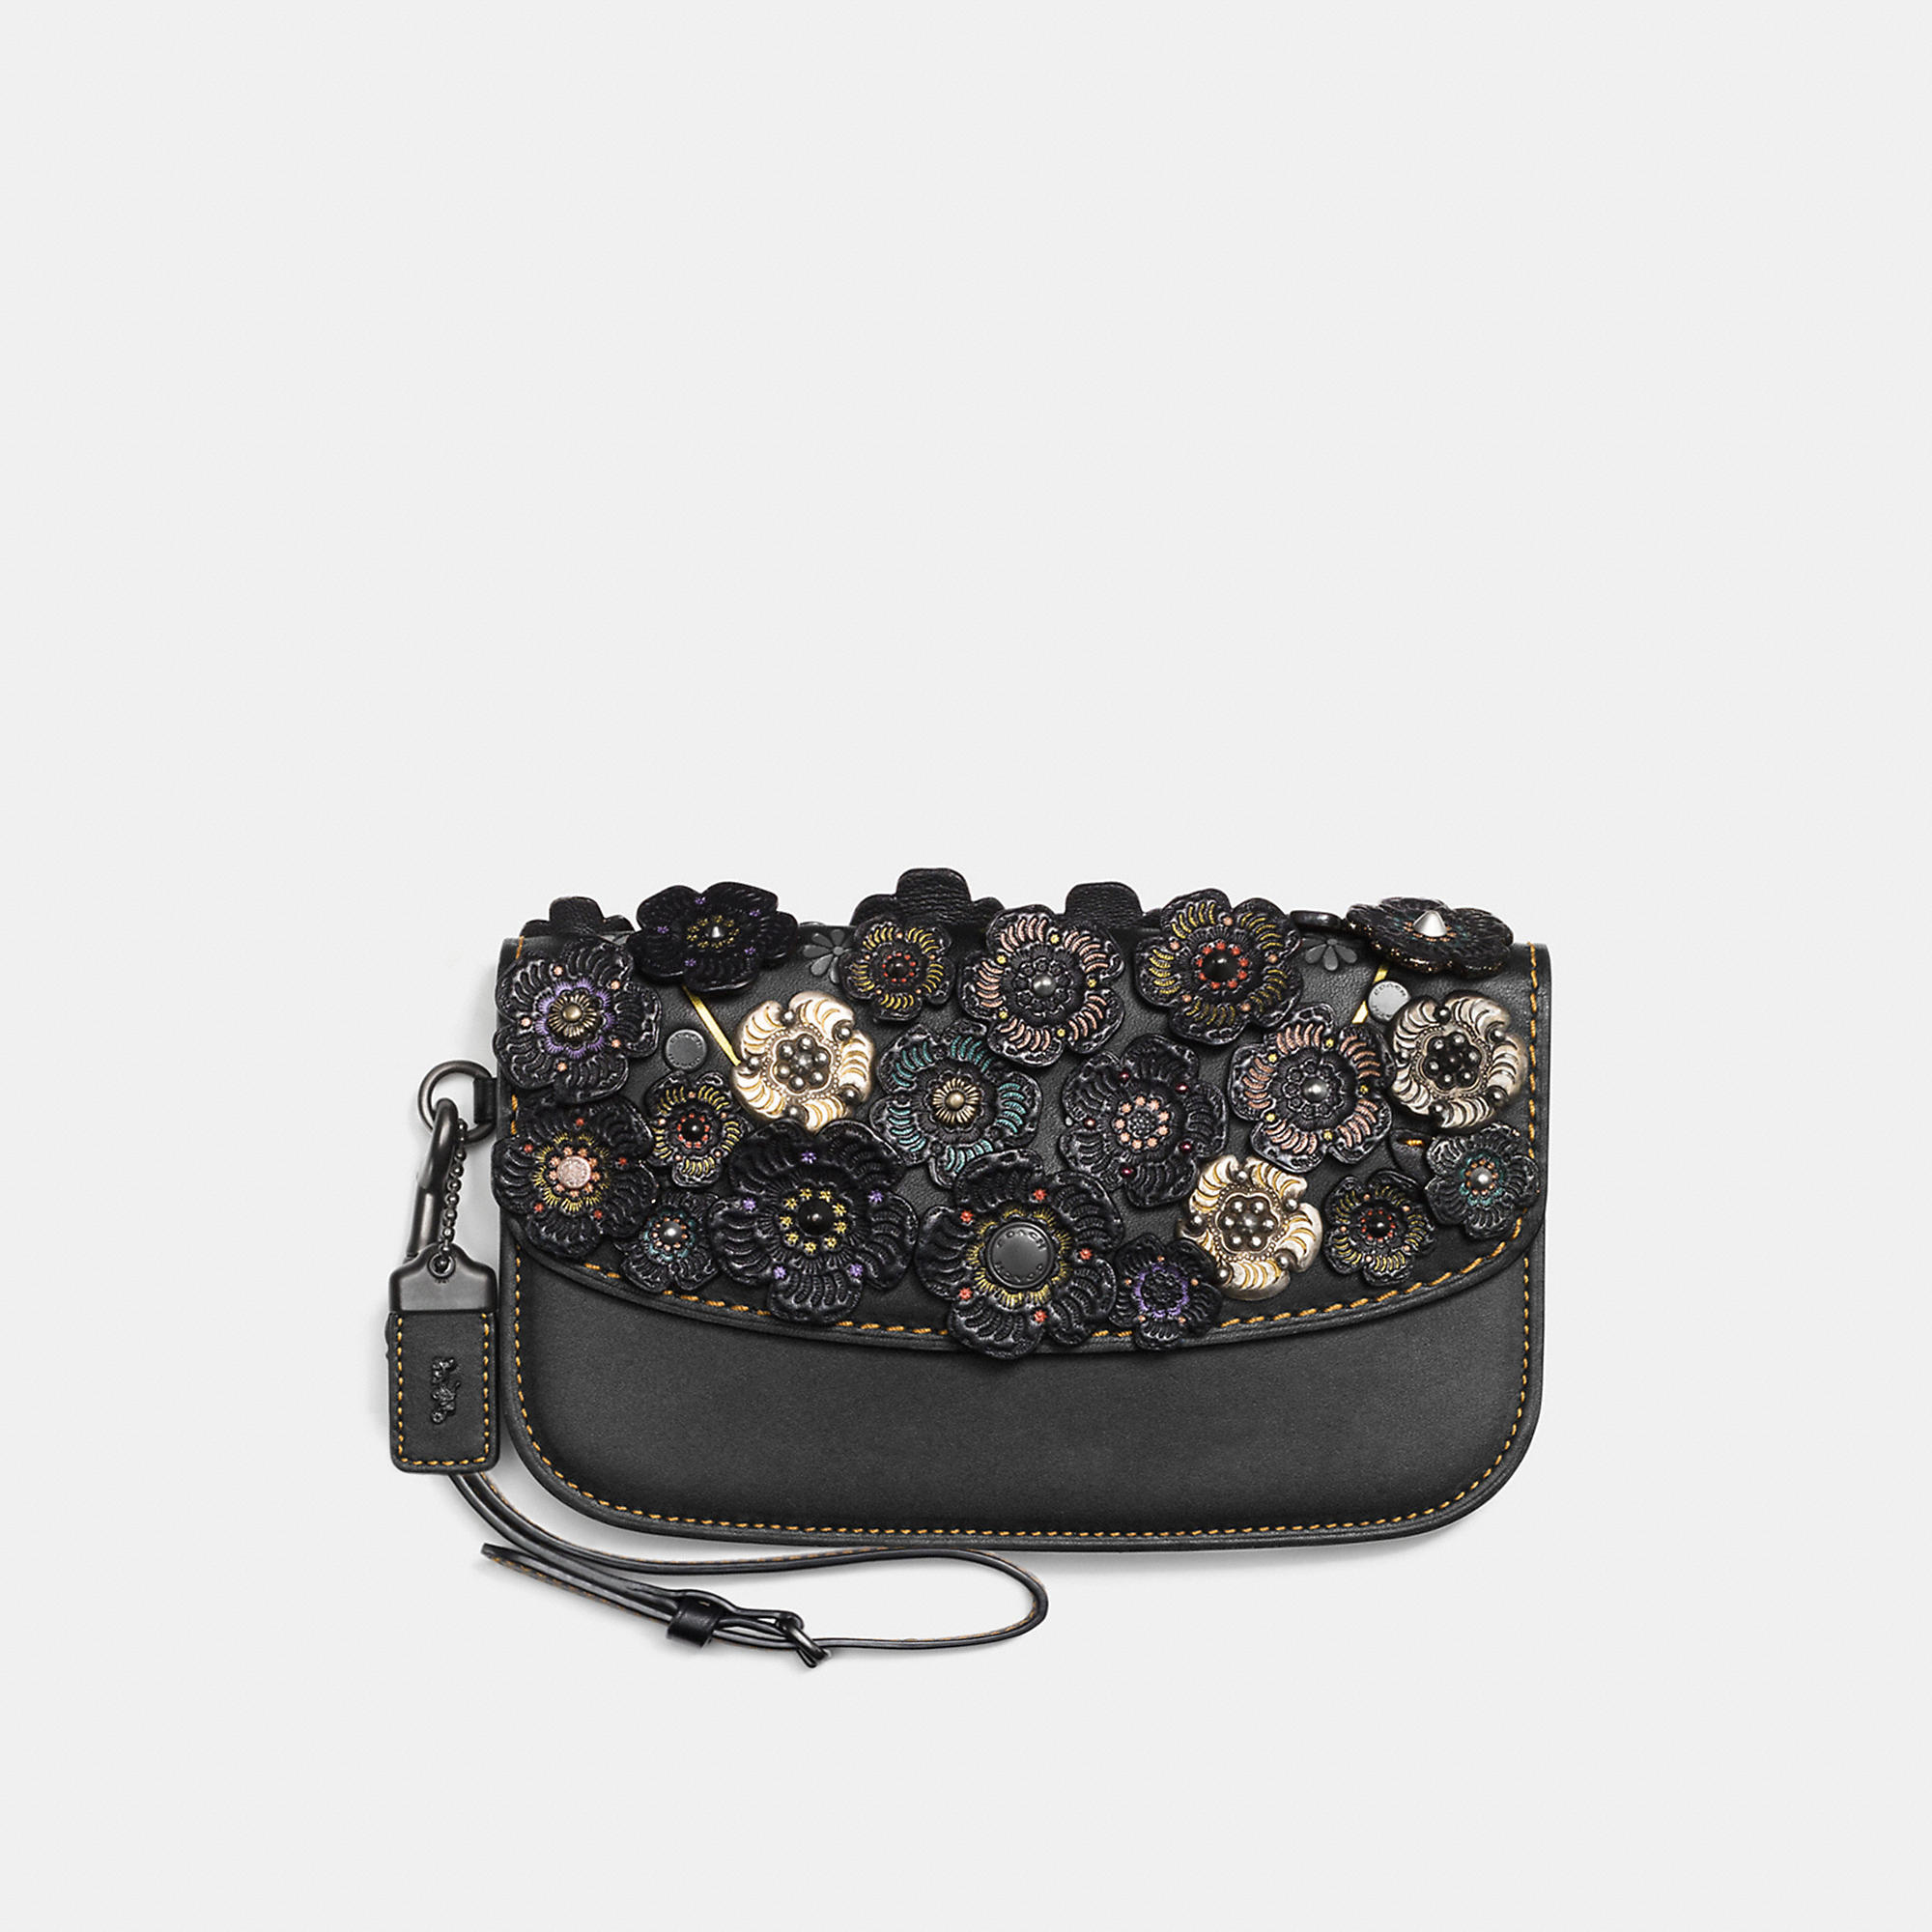 Coach Clutch In Glovetanned Leather With Tooled Tea Rose